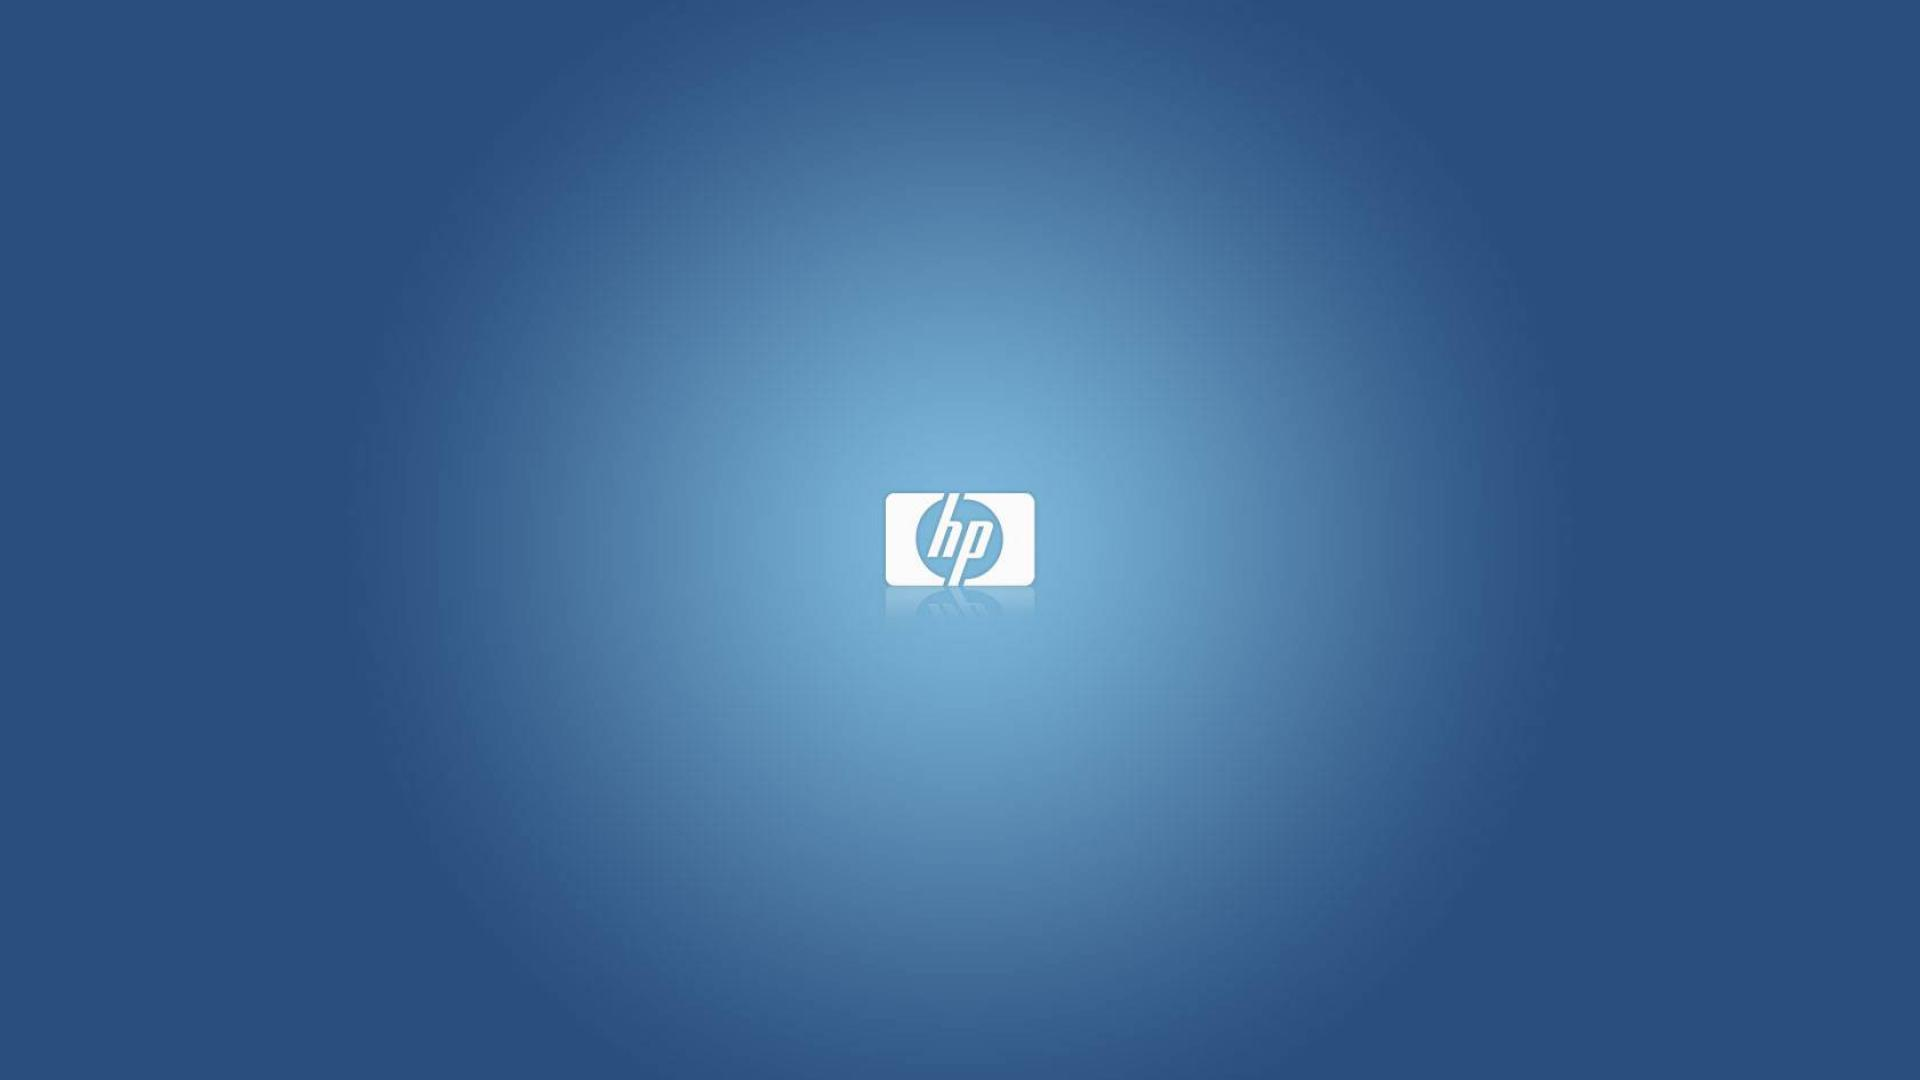 Hp wallpaper   11133   High Quality and Resolution Wallpapers on 1920x1080